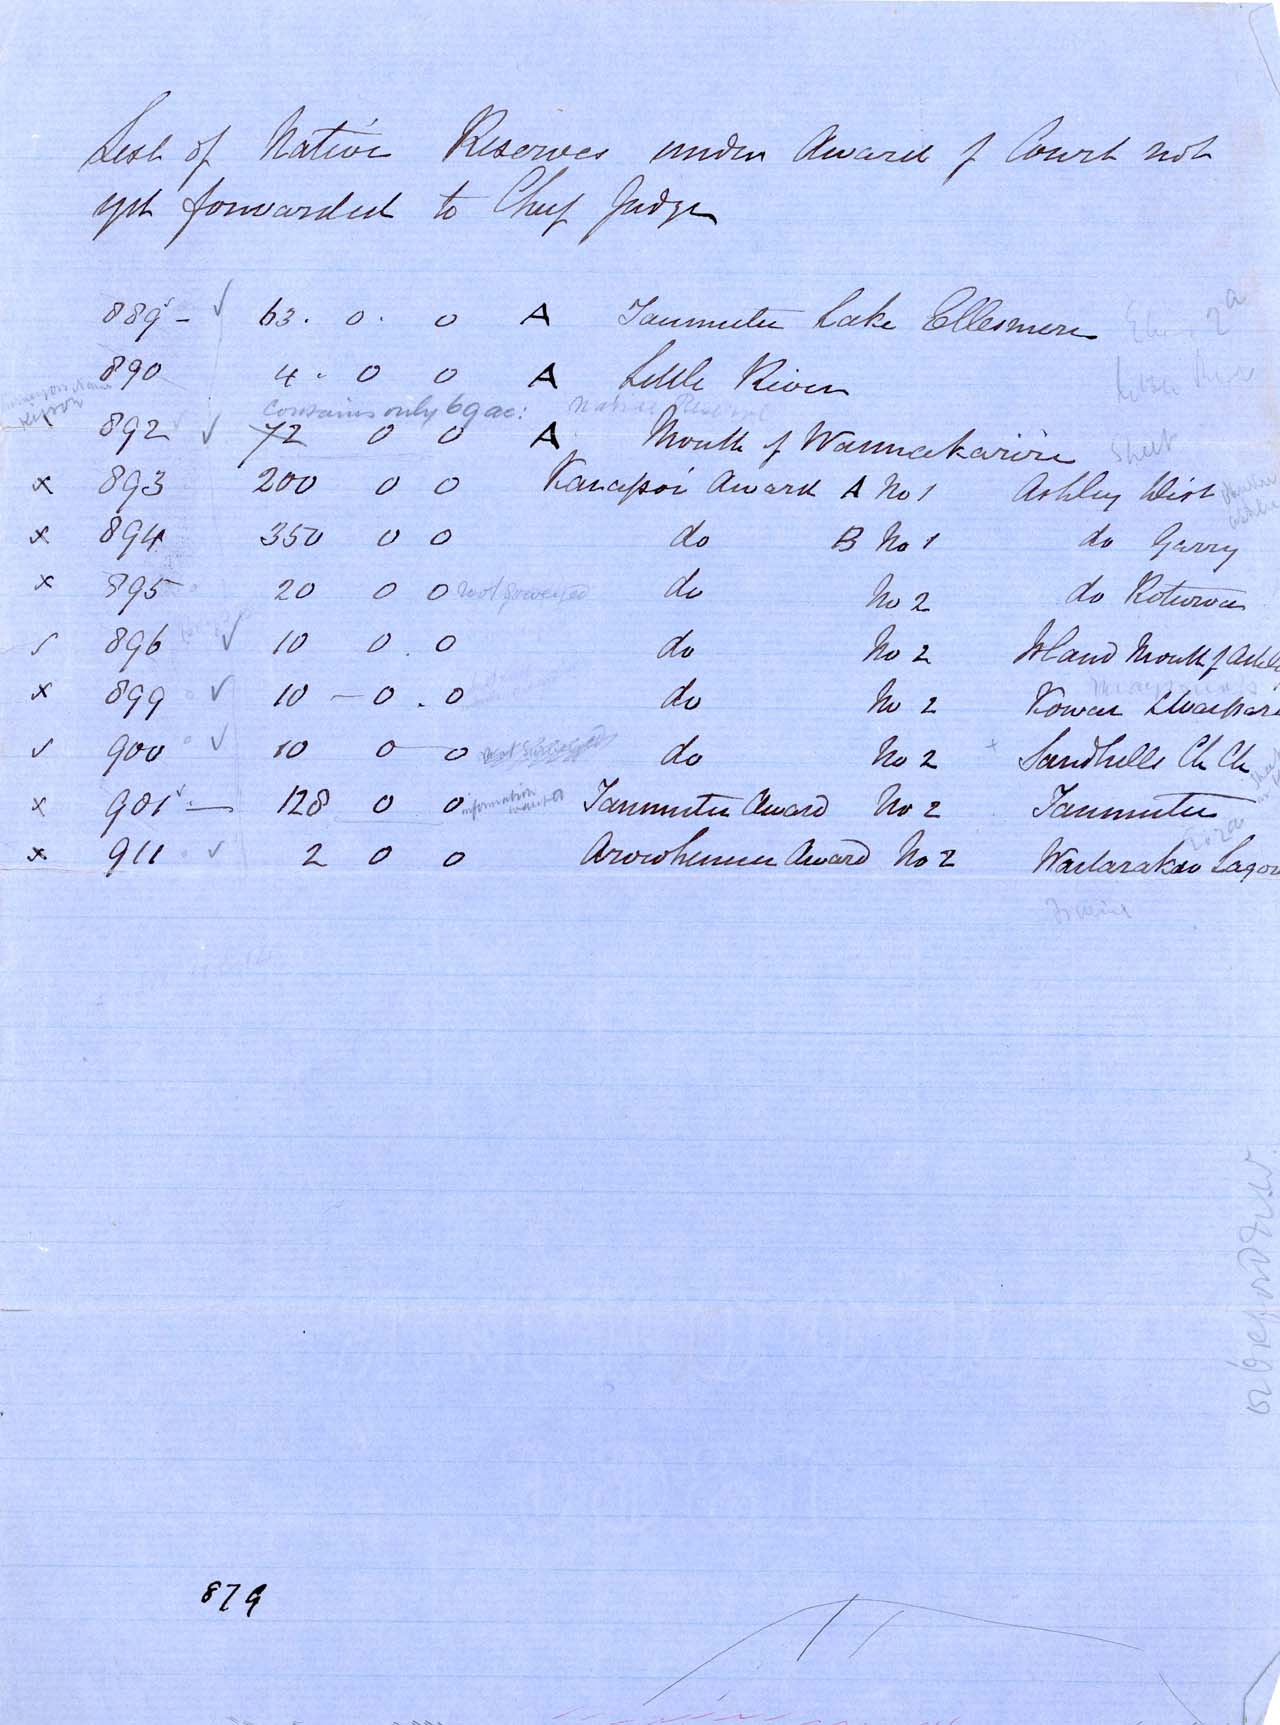 List of Reserves made by NLC - 1868